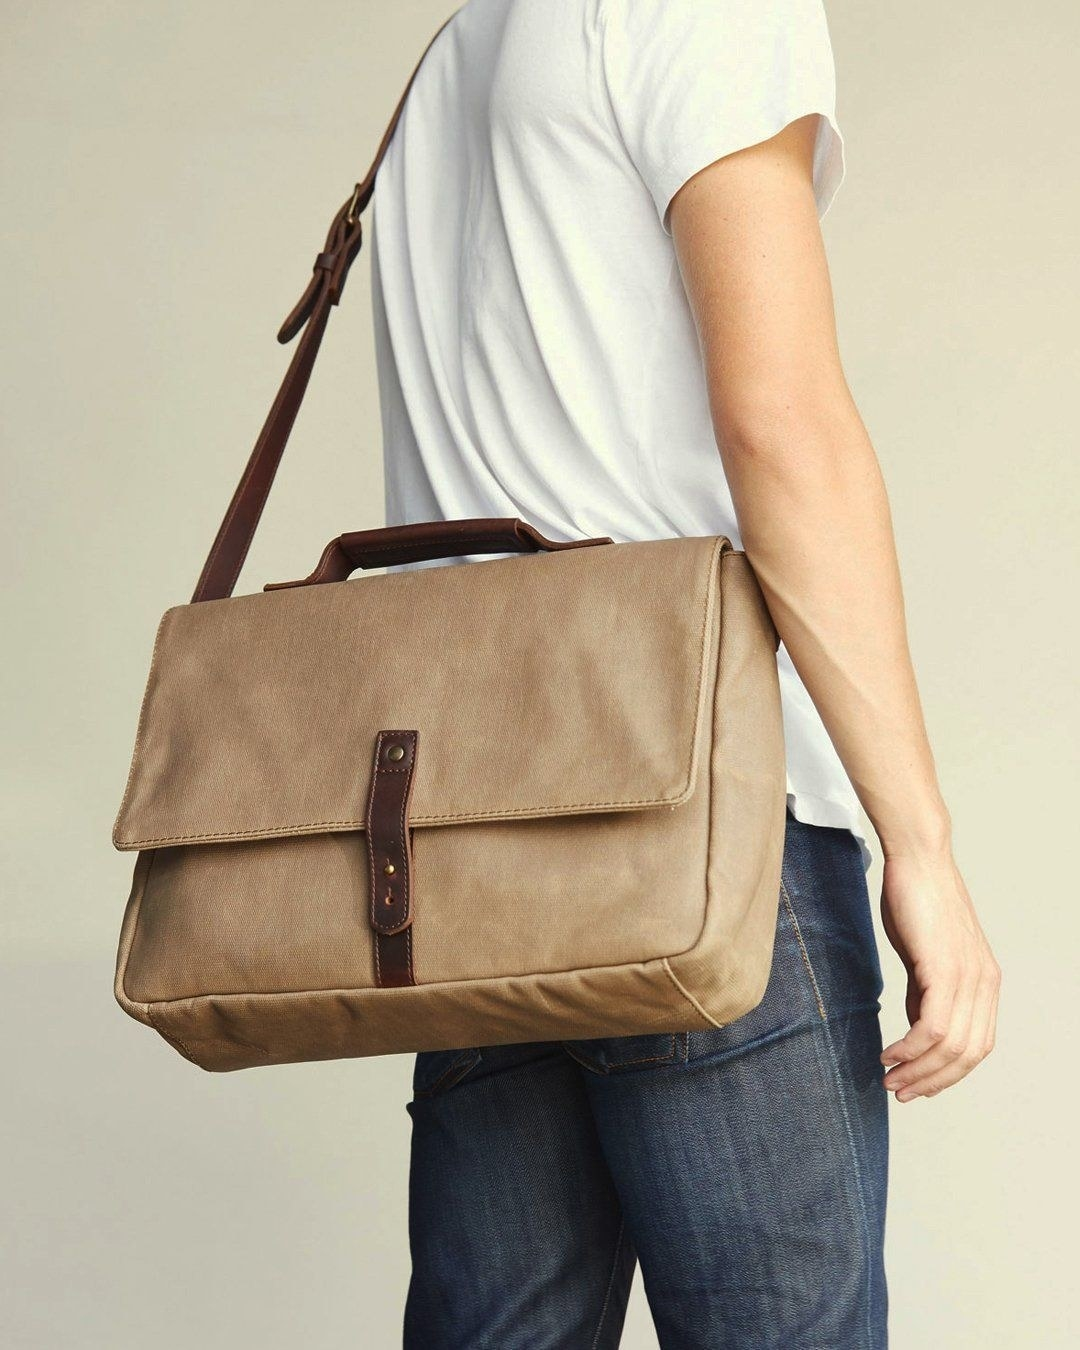 The messenger bag in brown